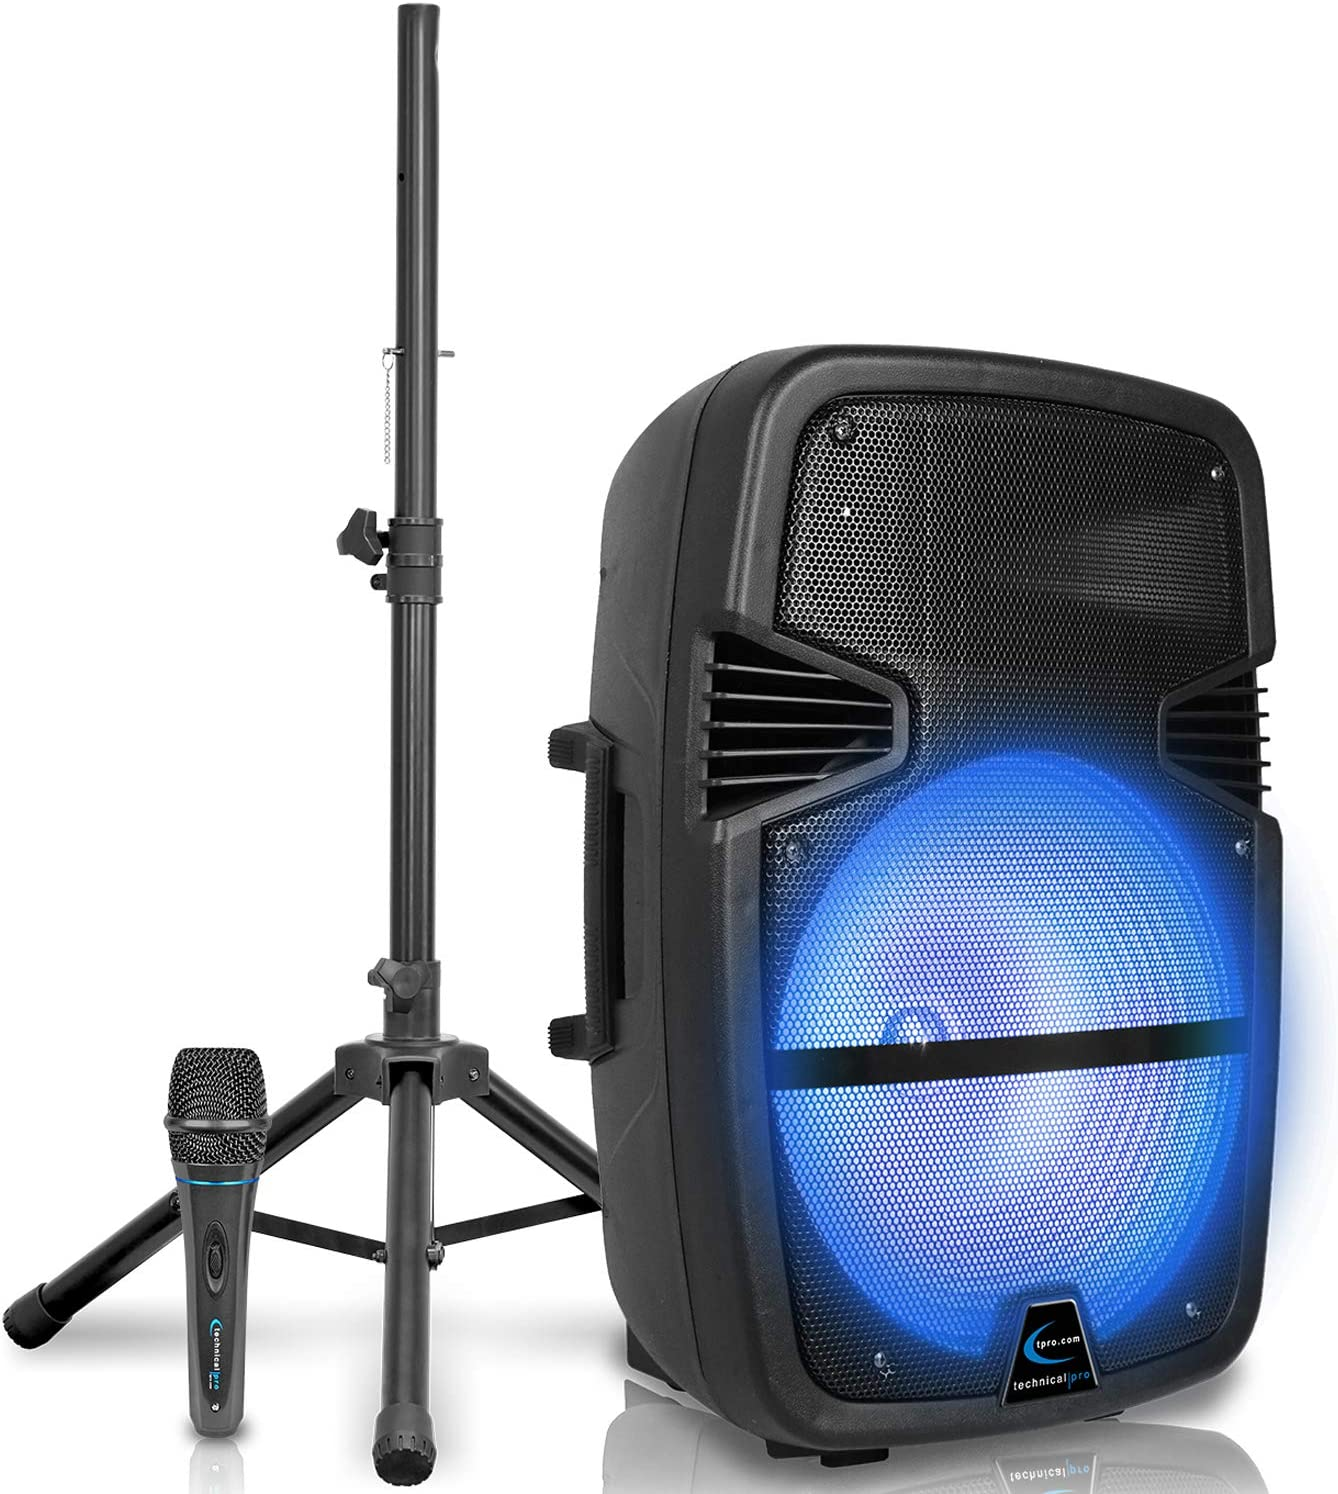 Technical Pro 3000 Watts Rechargeable 15 Inch Bluetooth LED Speaker Package with Tripod & Microphone, LED Woofer, SD/USB Inputs, TWS Stereo Sound, Wired Mic